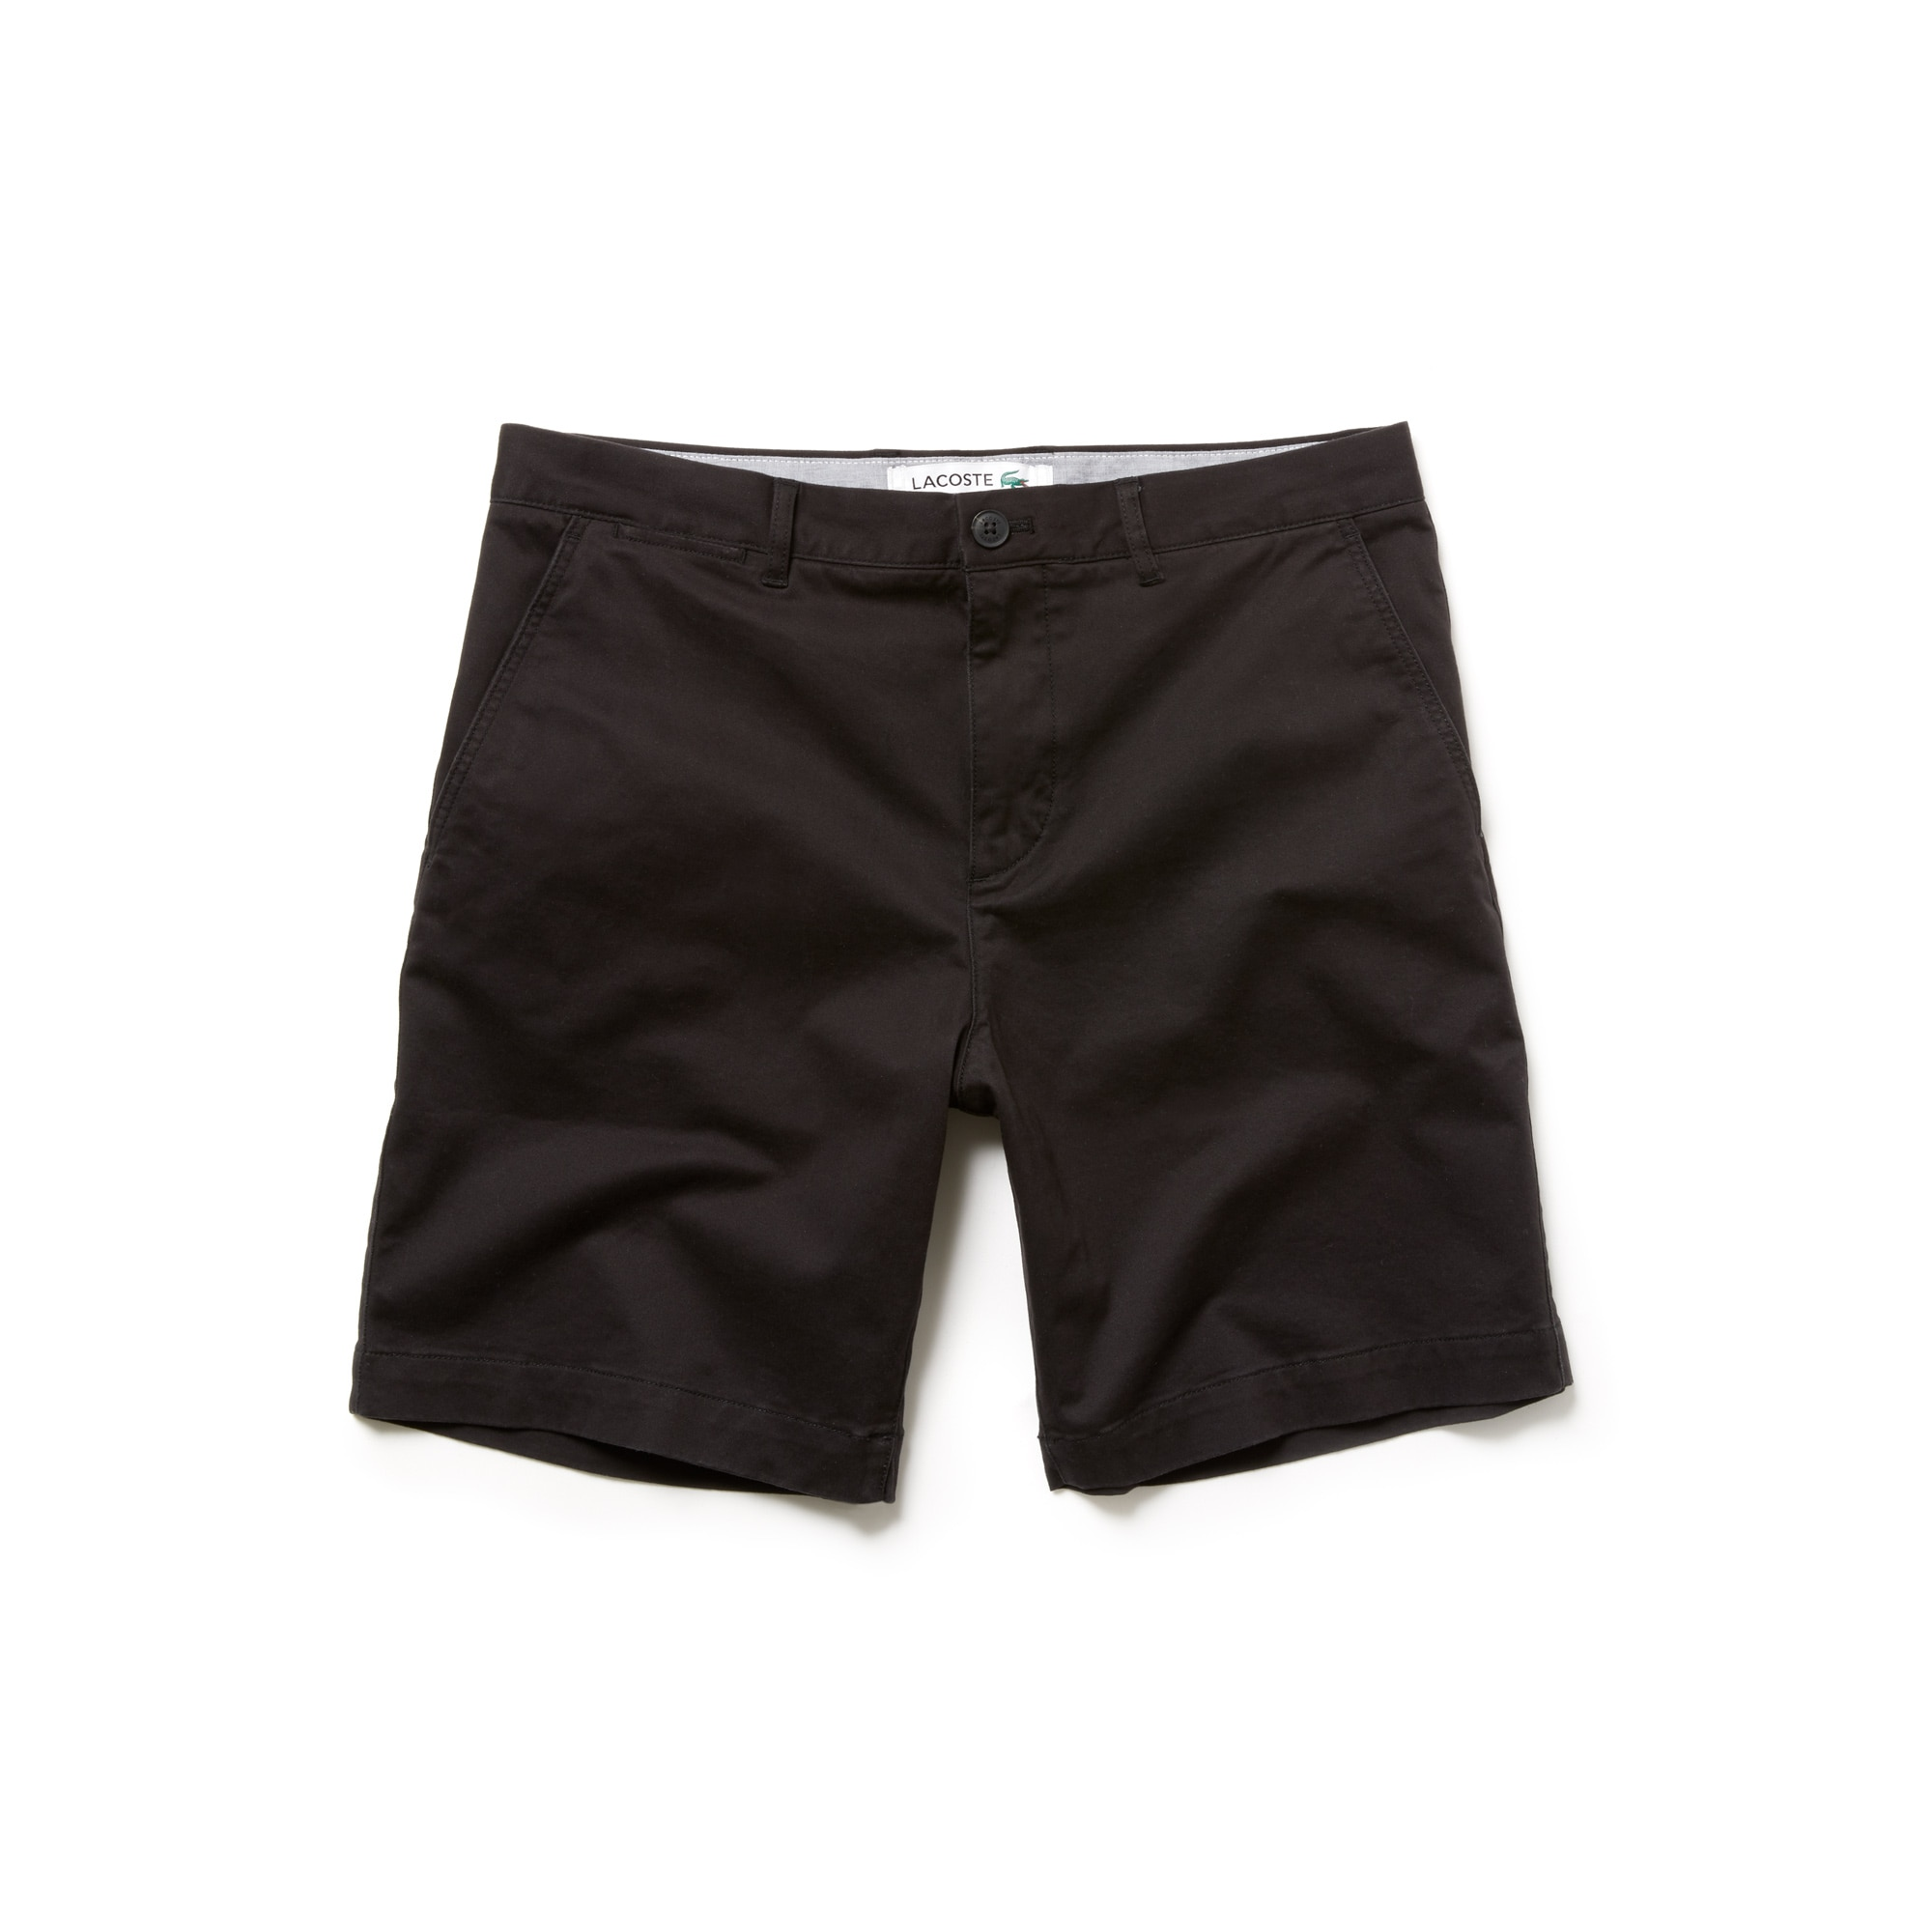 라코스테 반바지 Lacoste Mens Regular Fit Cotton Gabardine Bermuda Shorts,black